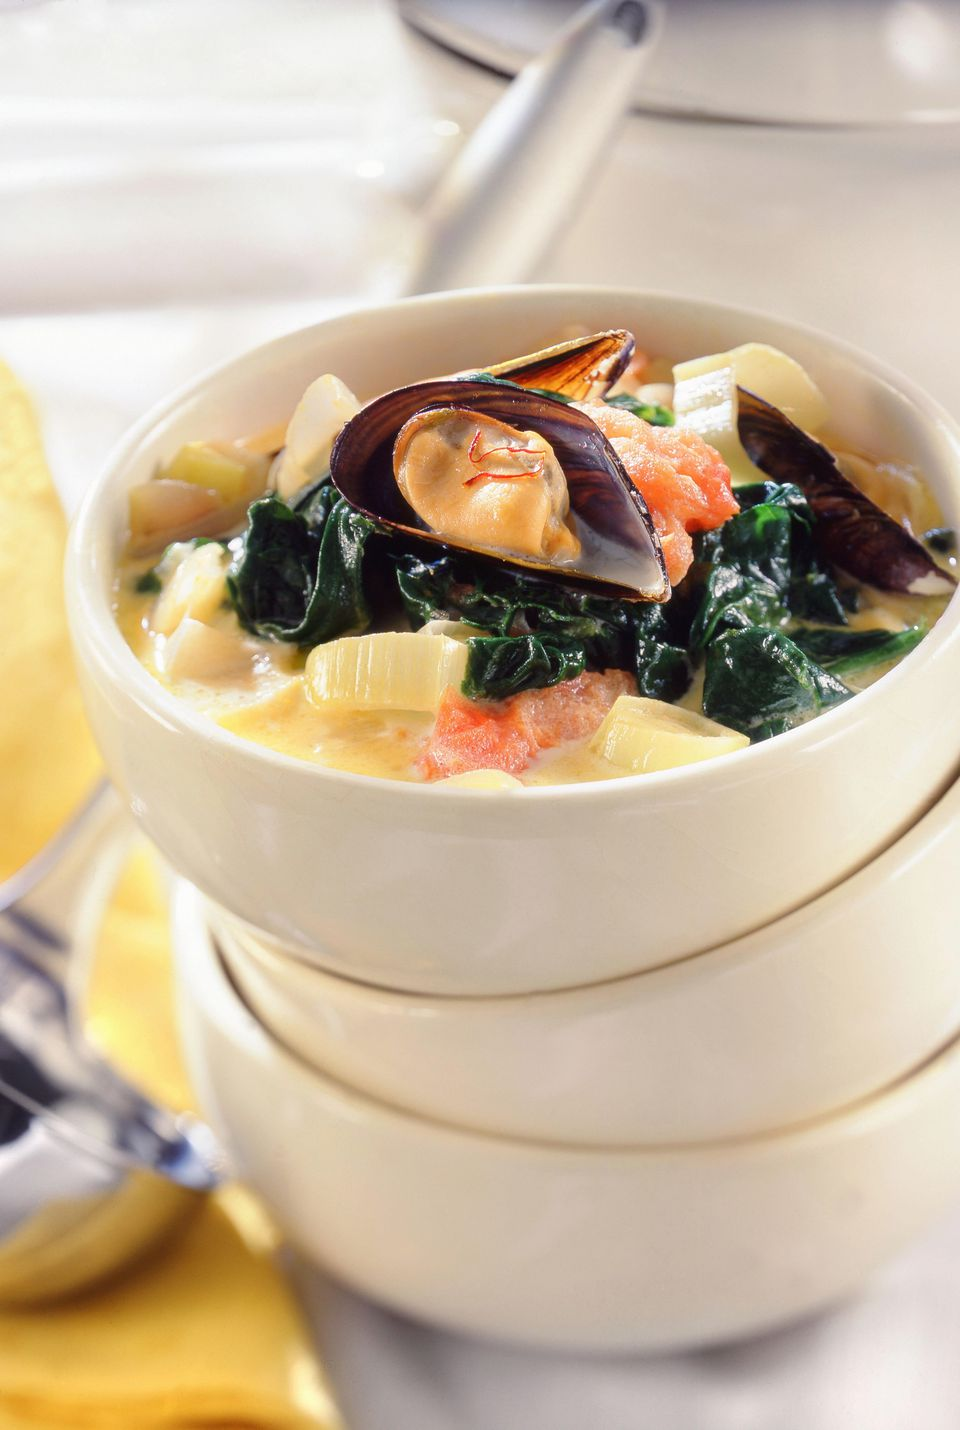 Fish stew with mussels, spinach and saffron